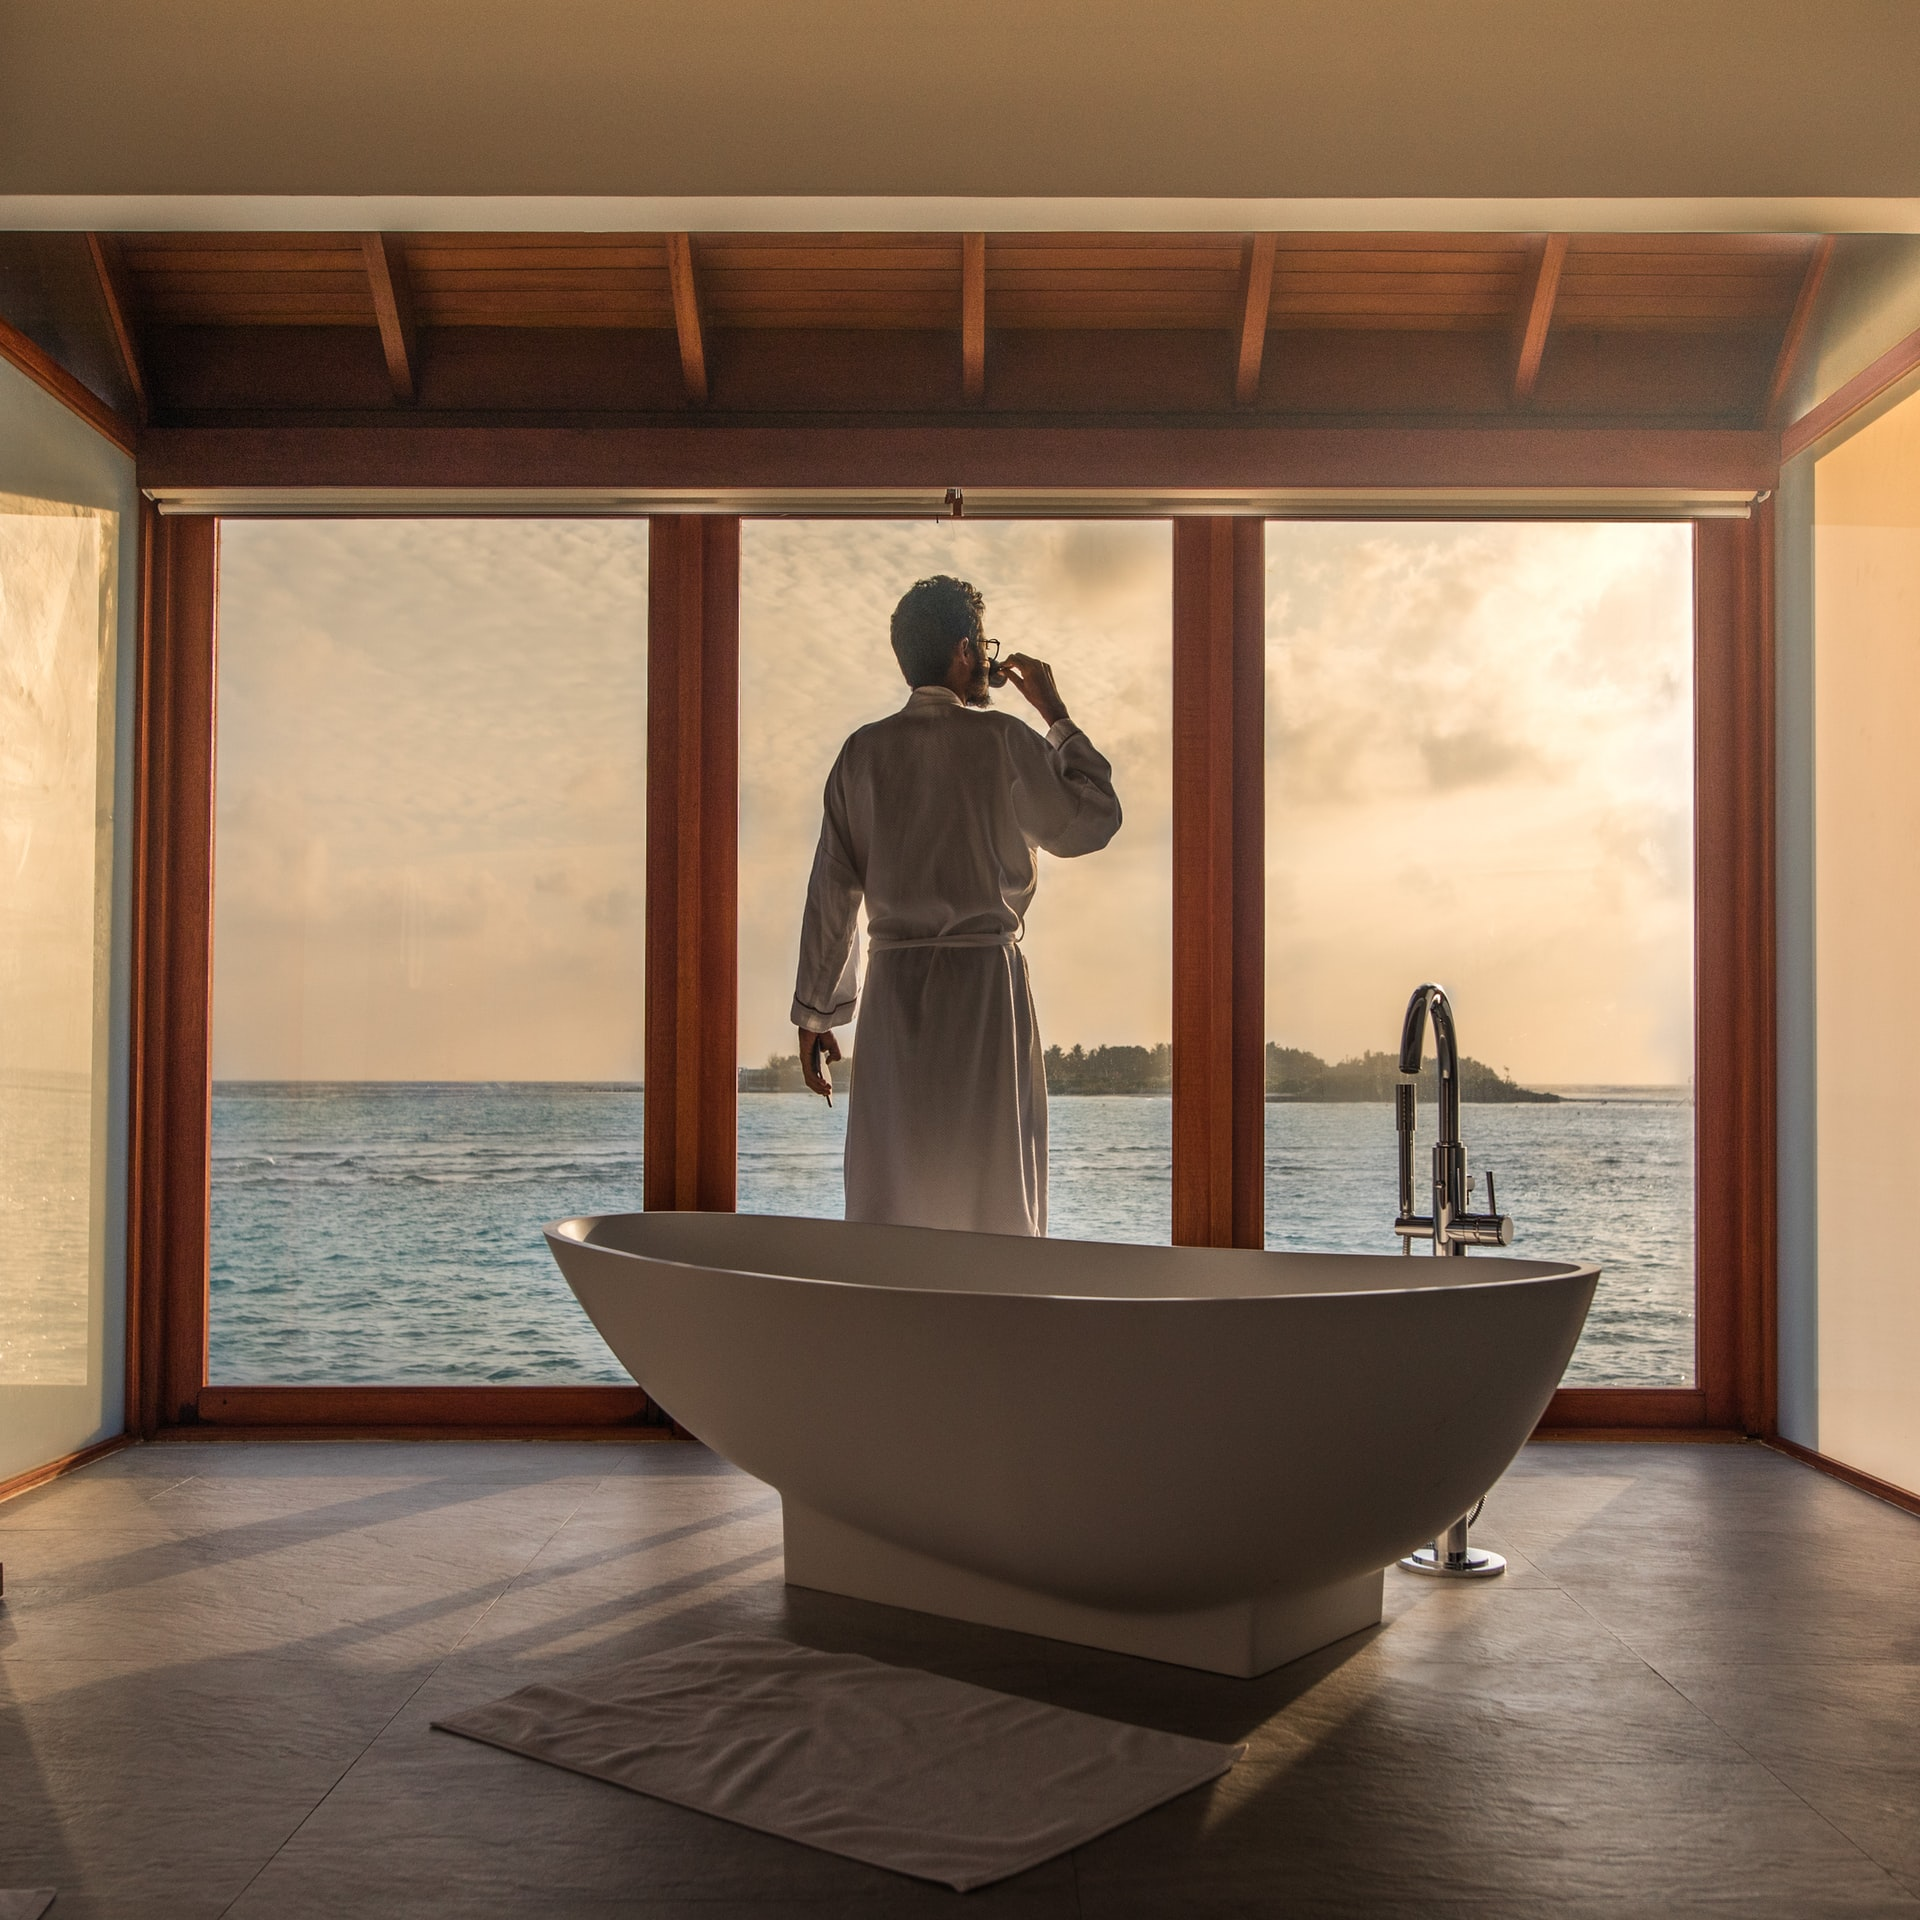 a luxurious bathroom with a view of the ocean